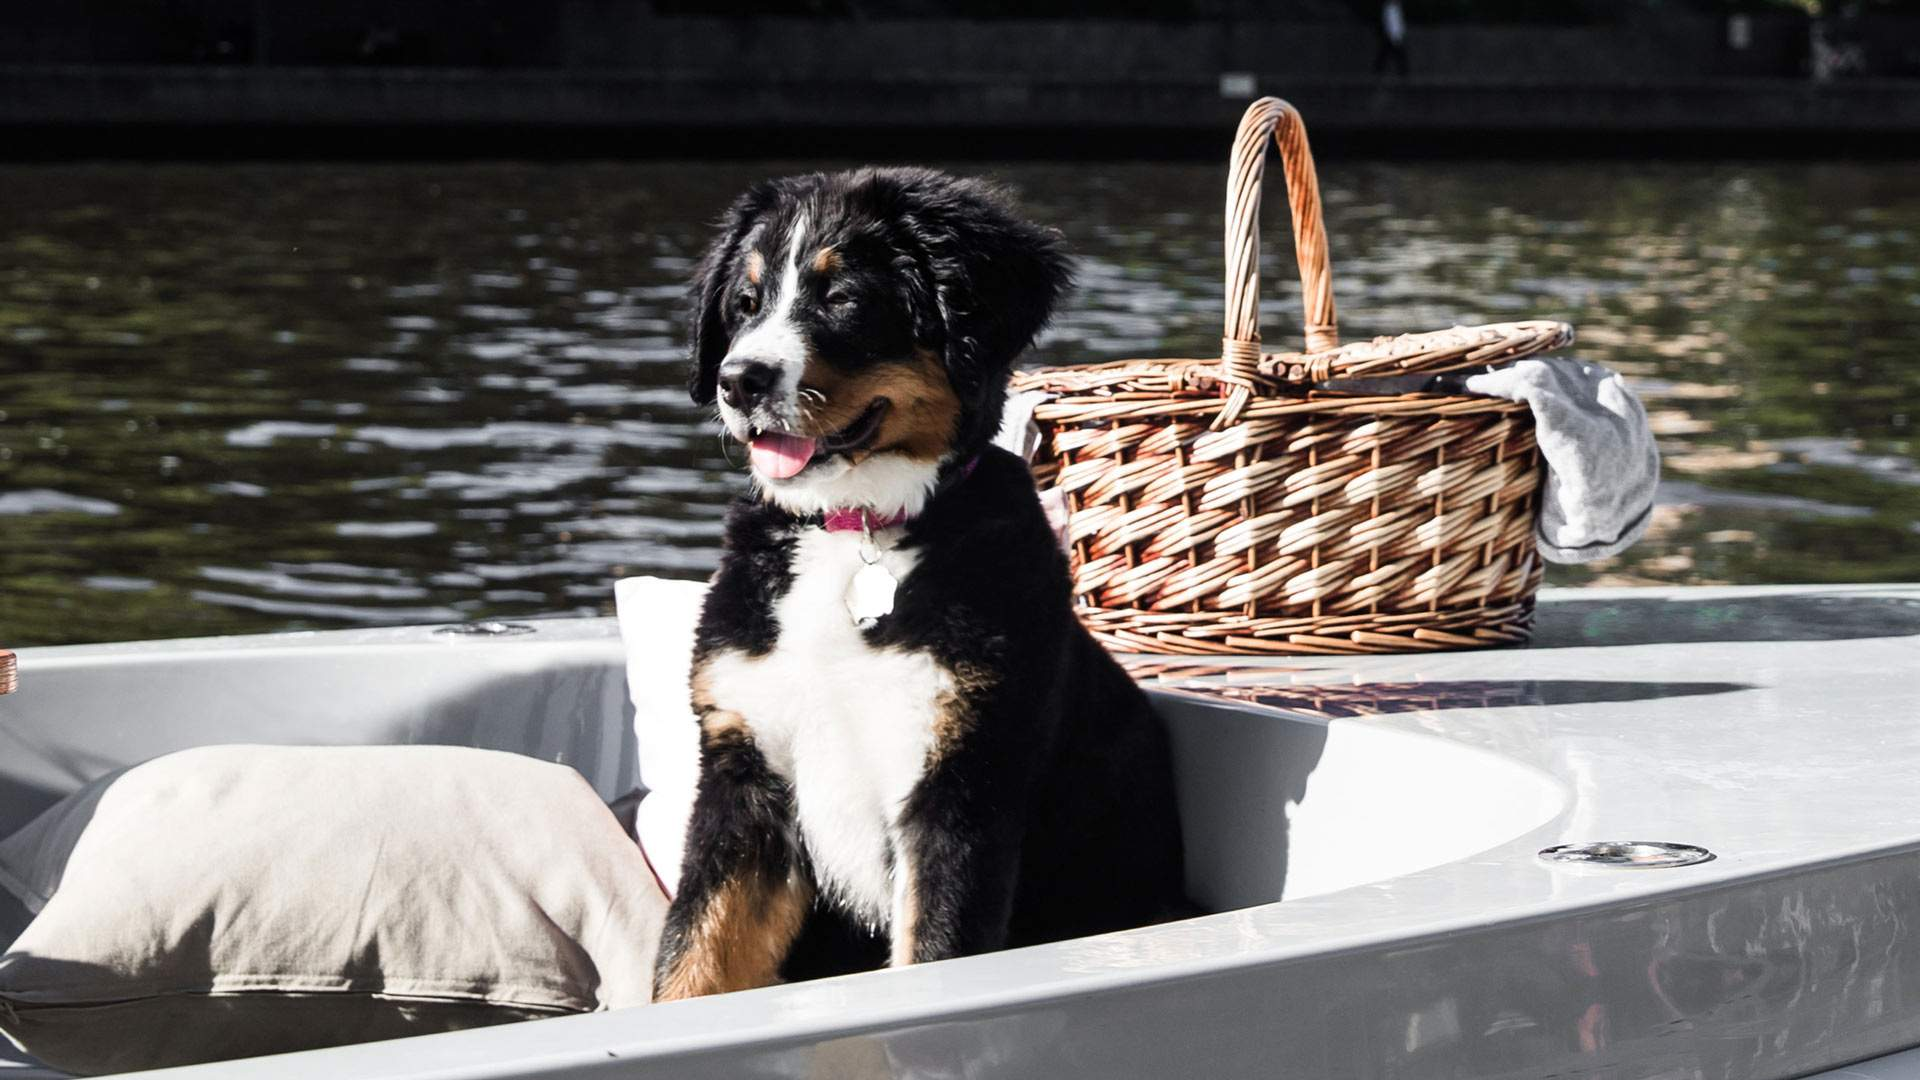 Melbourne's Pet-Friendly BYO Picnic Boats Are Now Setting Sail From the CBD